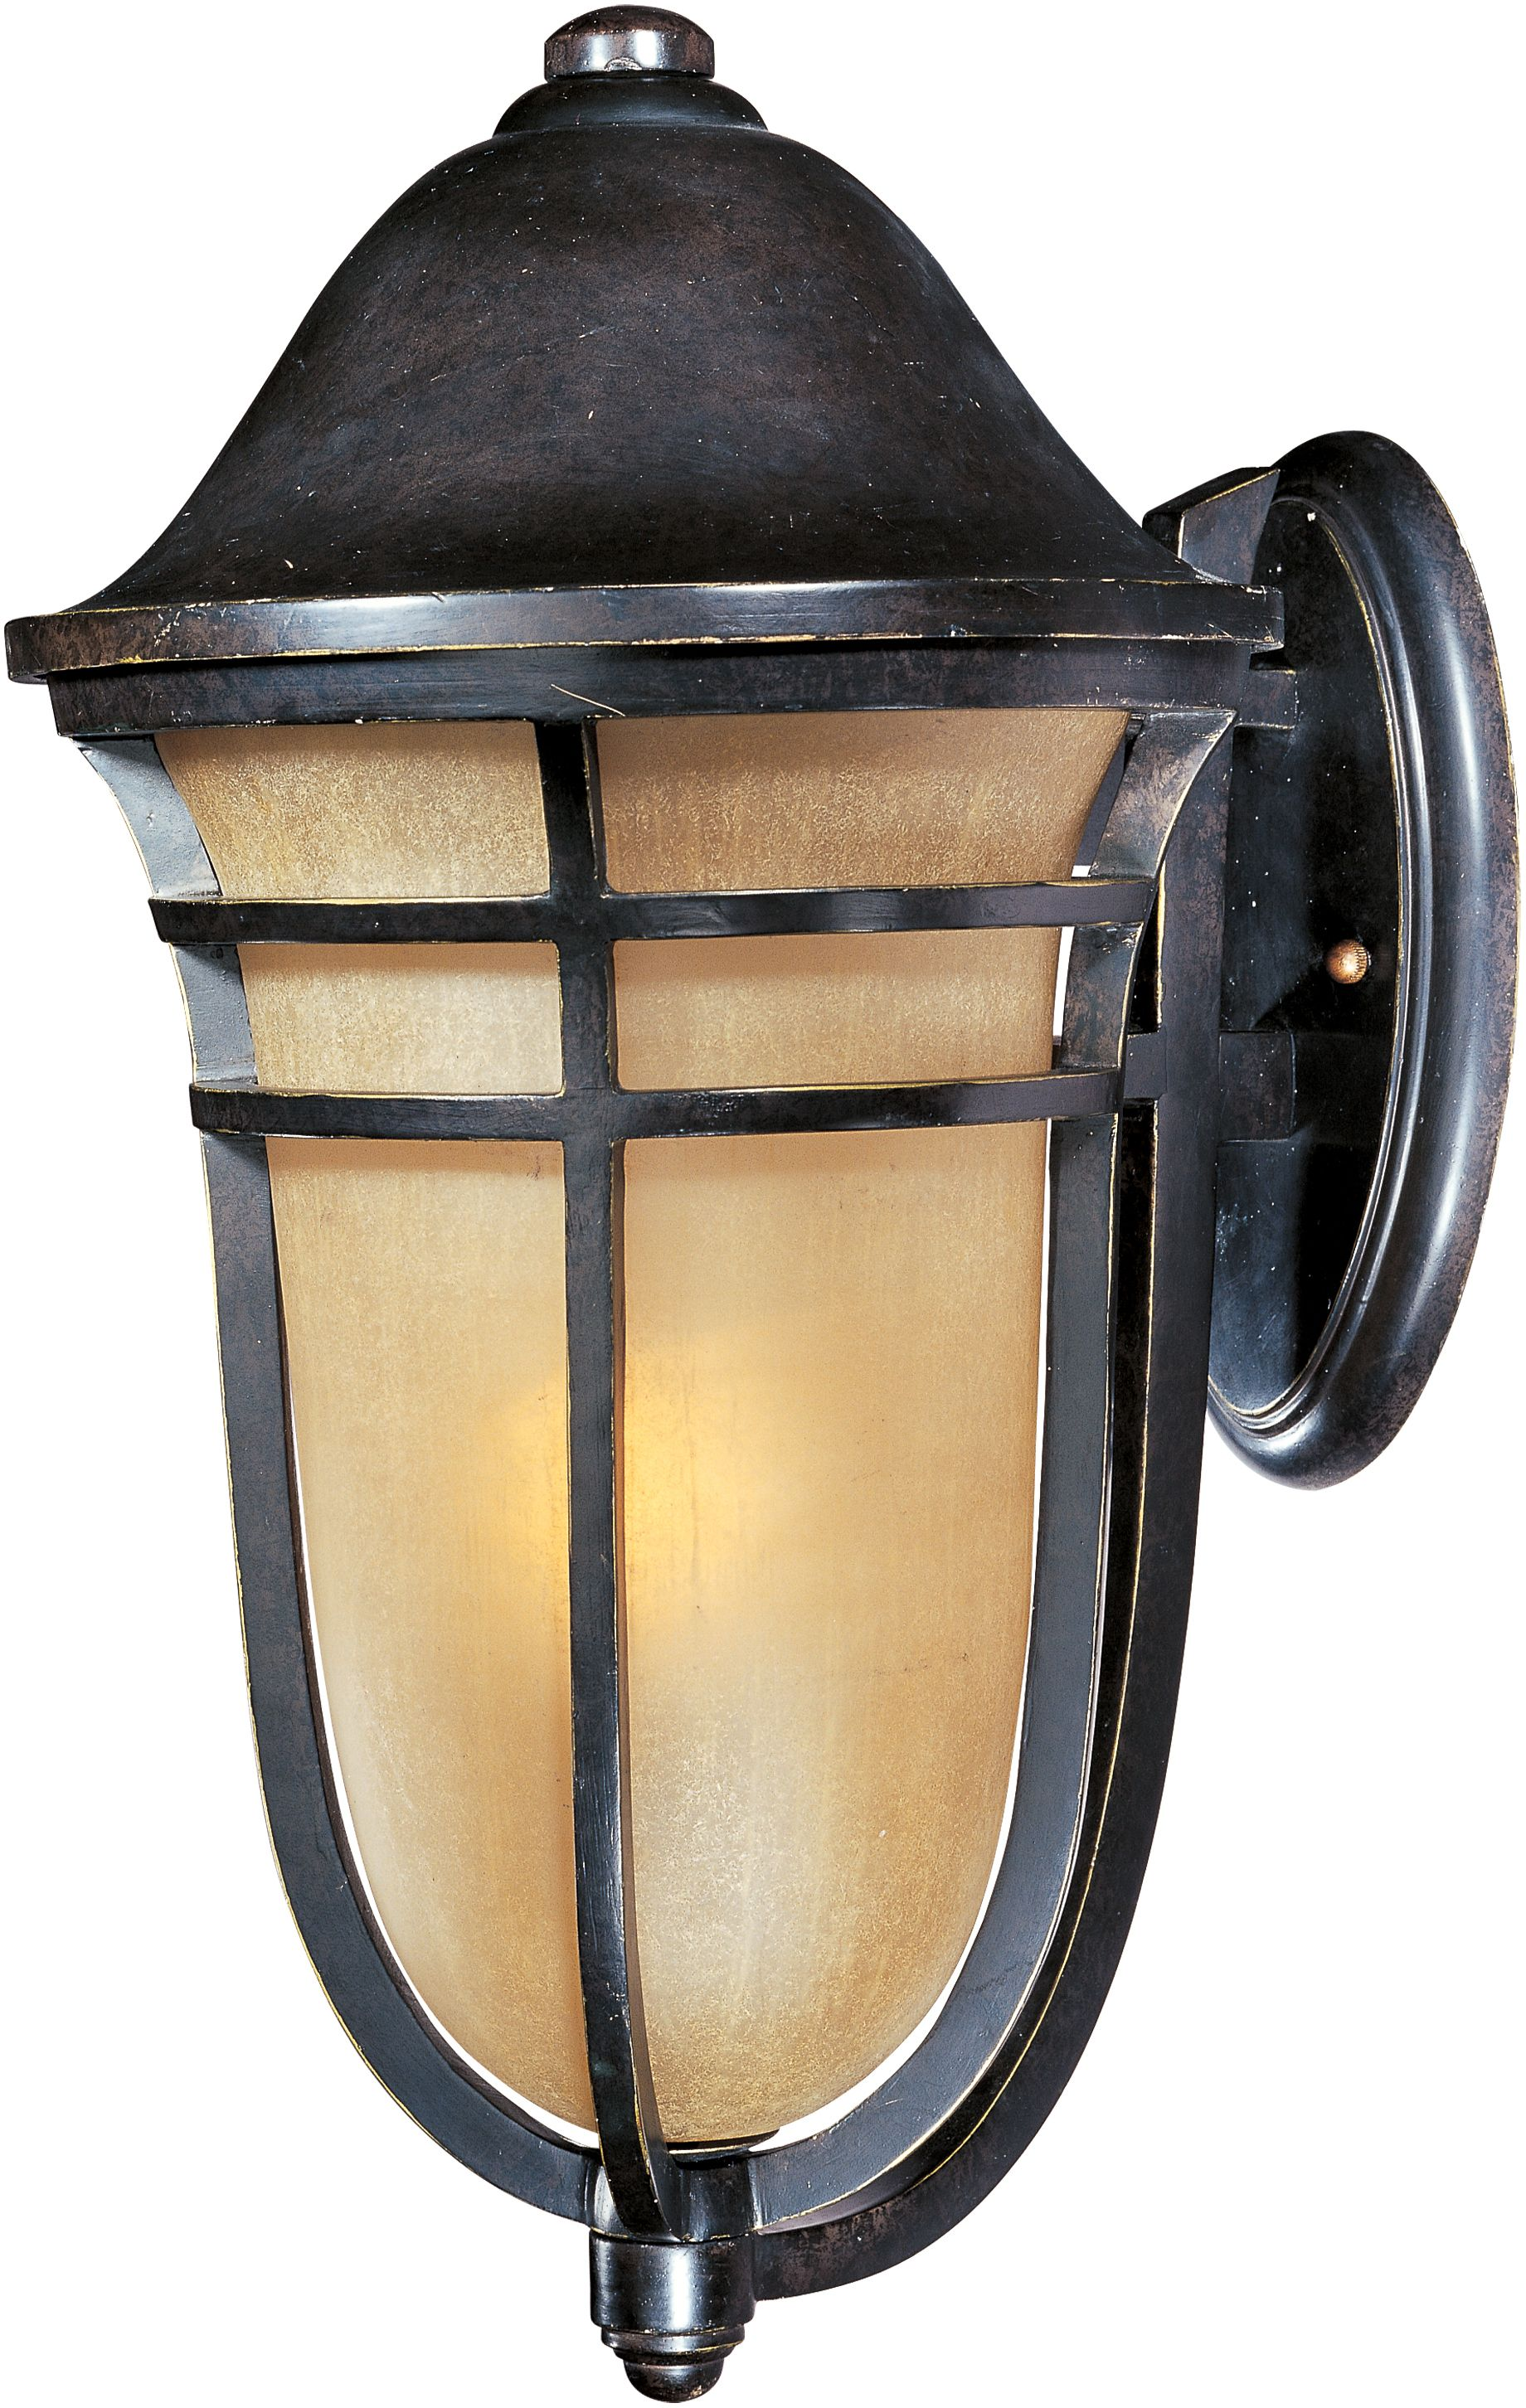 Vivex From Maxim Lighting Outdoor Fixtures That Are Non Corrosive Uv Resistant And Backed By A 3 Year Limited Warranty